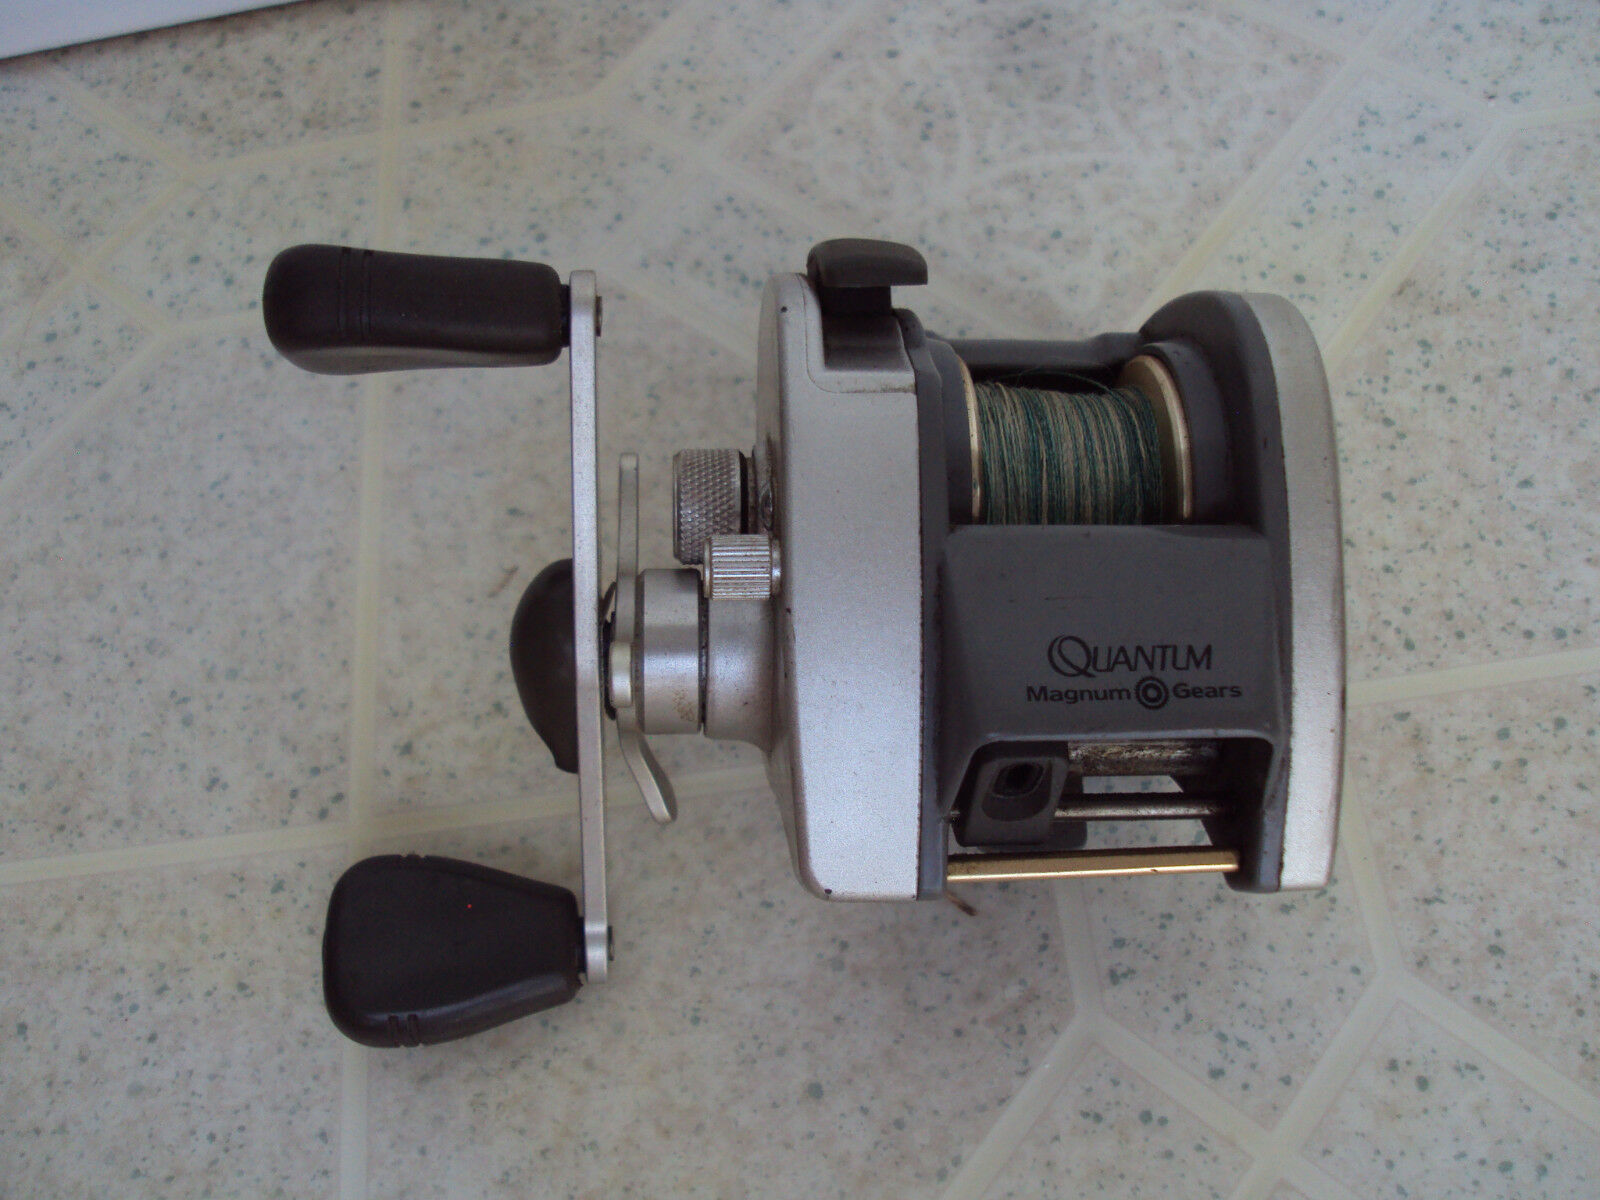 Quantum 1310 MG Baitcasting Reel VERY SMOOTH REELING ACTION   official quality